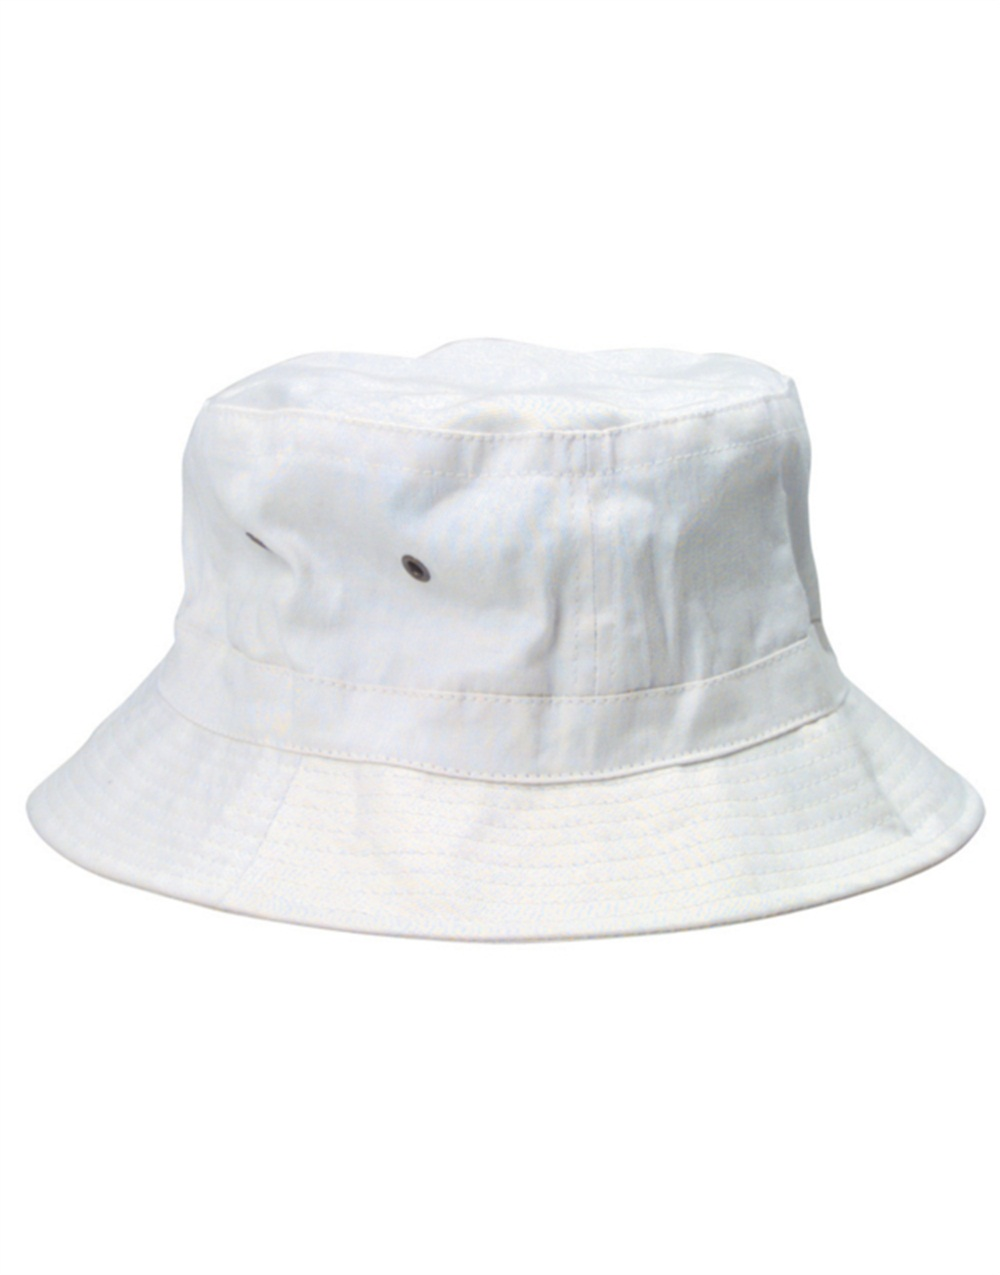 White popeye gilligan sailor captains navy fishing marine for Fishing bucket hat